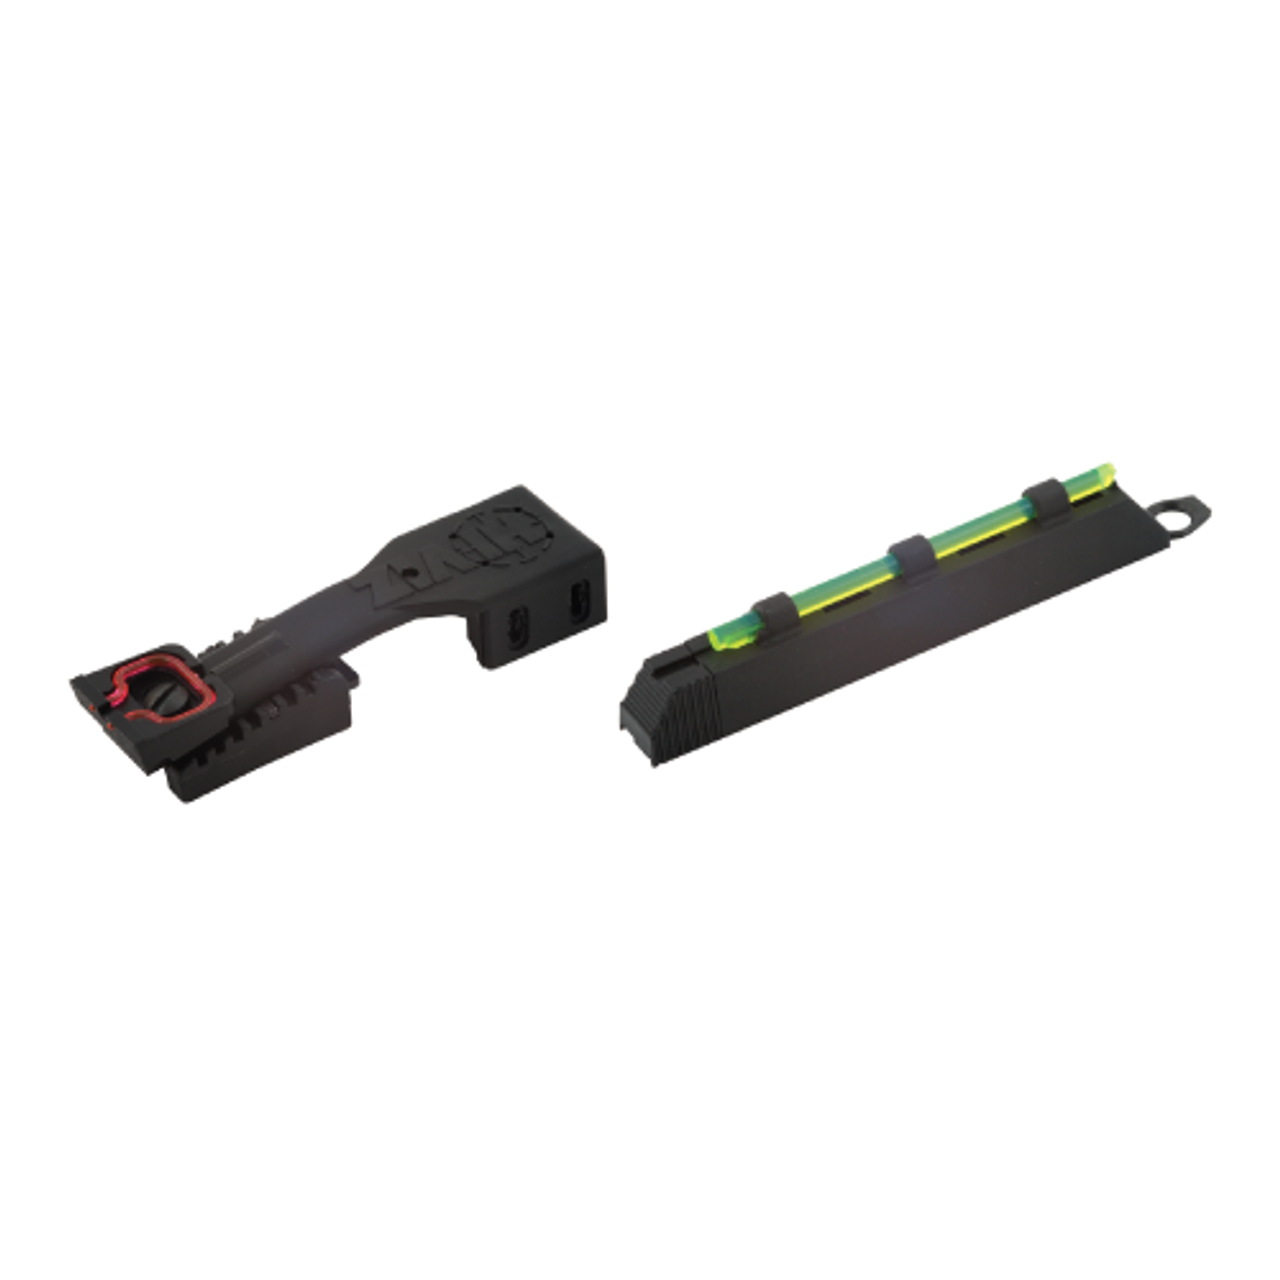 HI-VIZ Four-In-One Front and Rear Shotgun Sight Set